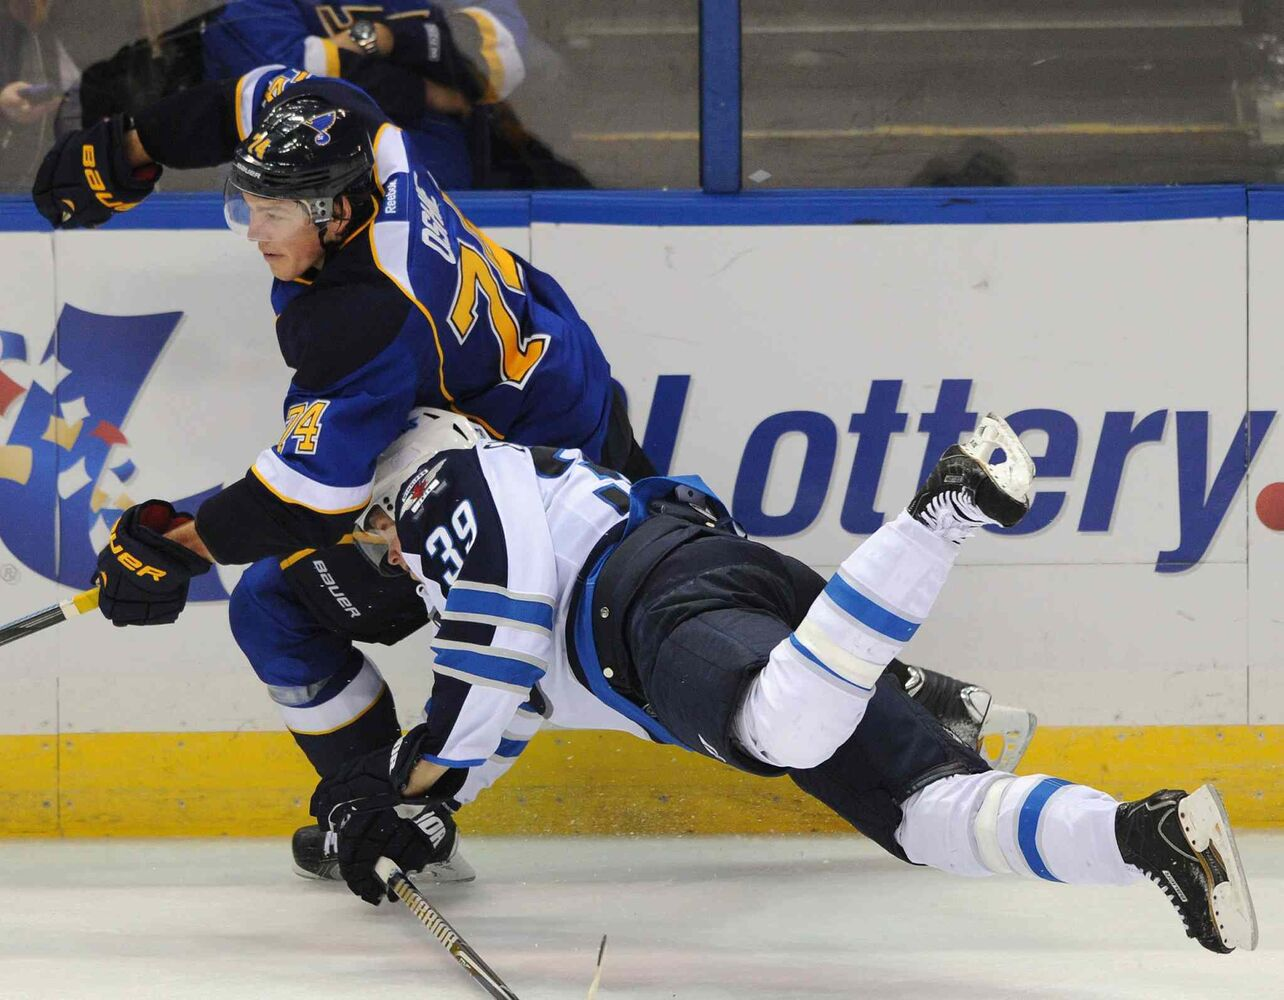 Winnipeg Jets defenceman Tobias Enstrom collides with St. Louis Blues forward T.J. Oshie during the third period.